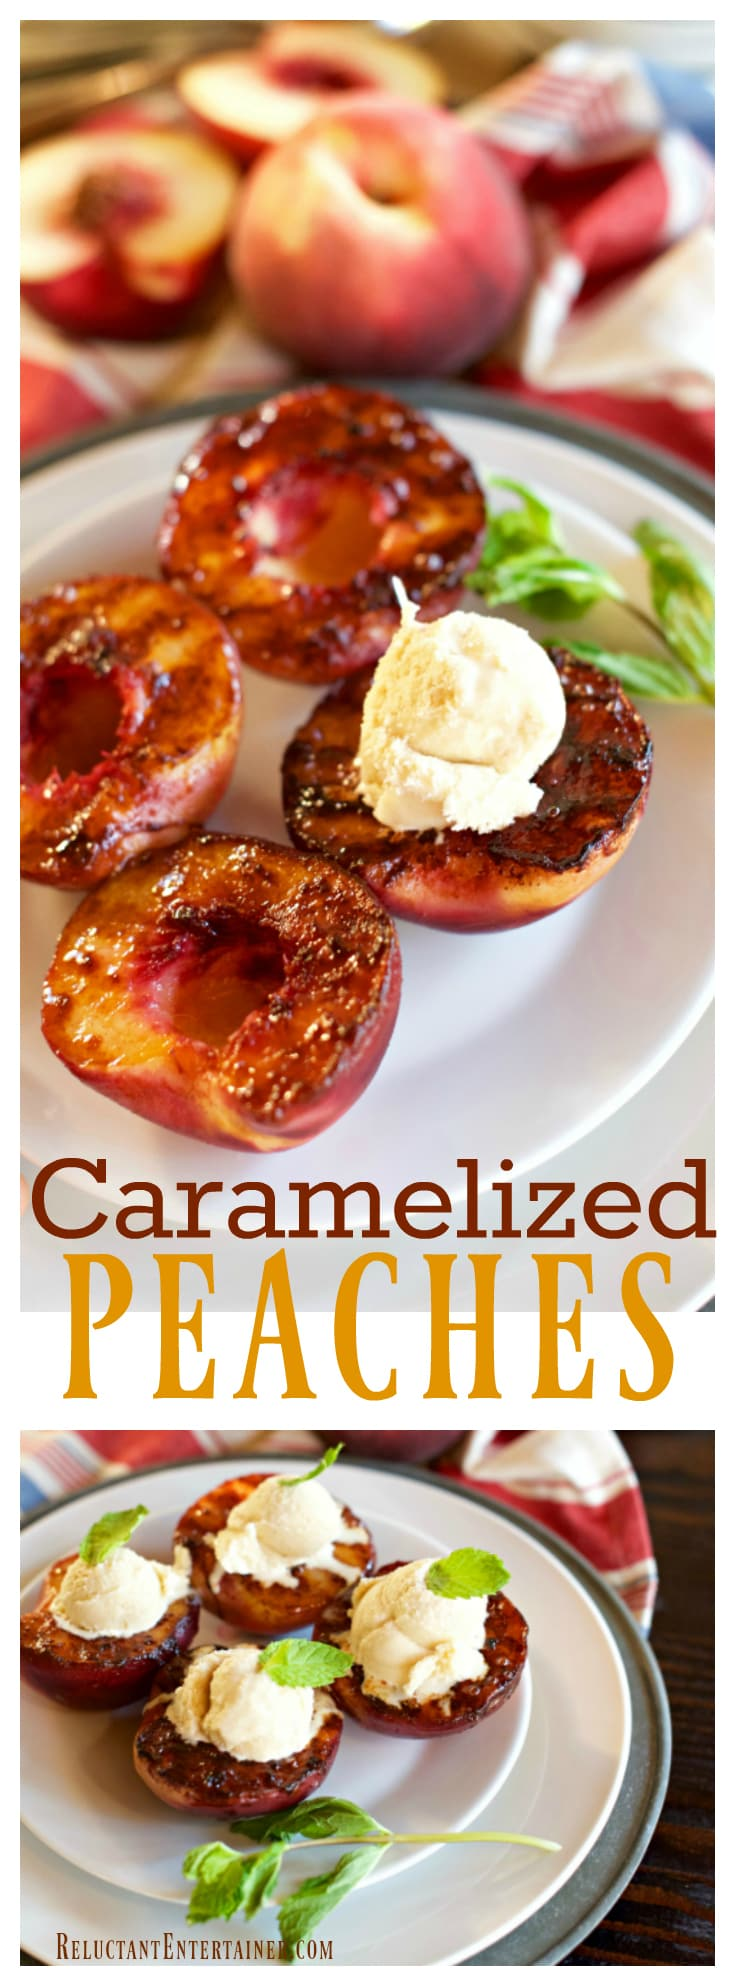 Caramelized Peaches Recipe